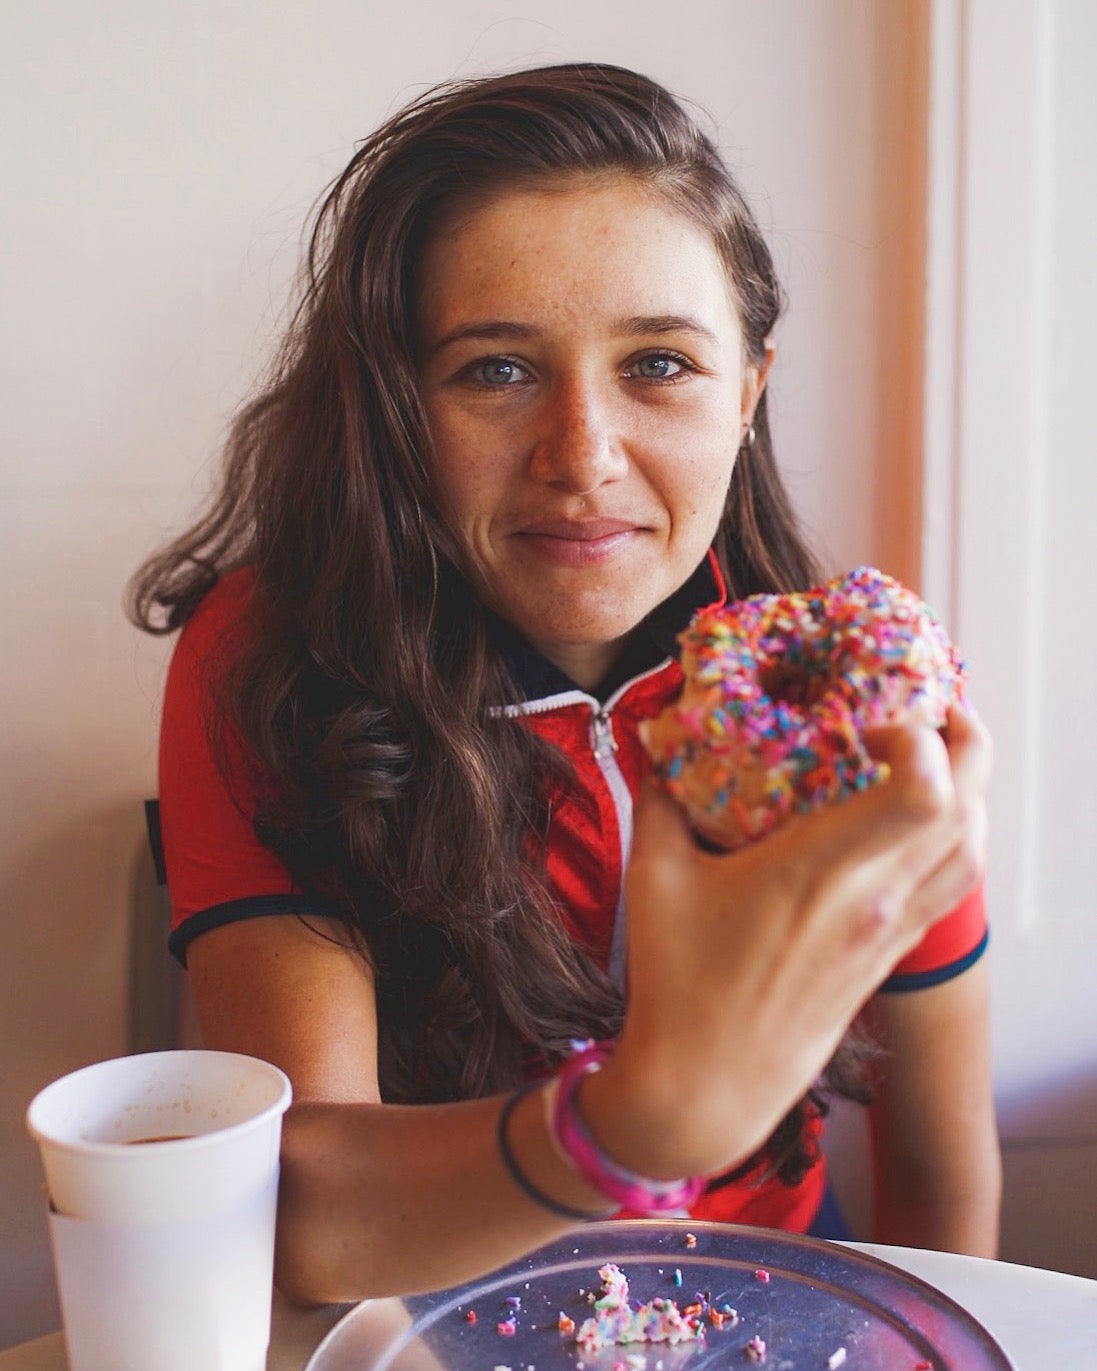 Libby Caldwell refueling with a donut after a workout